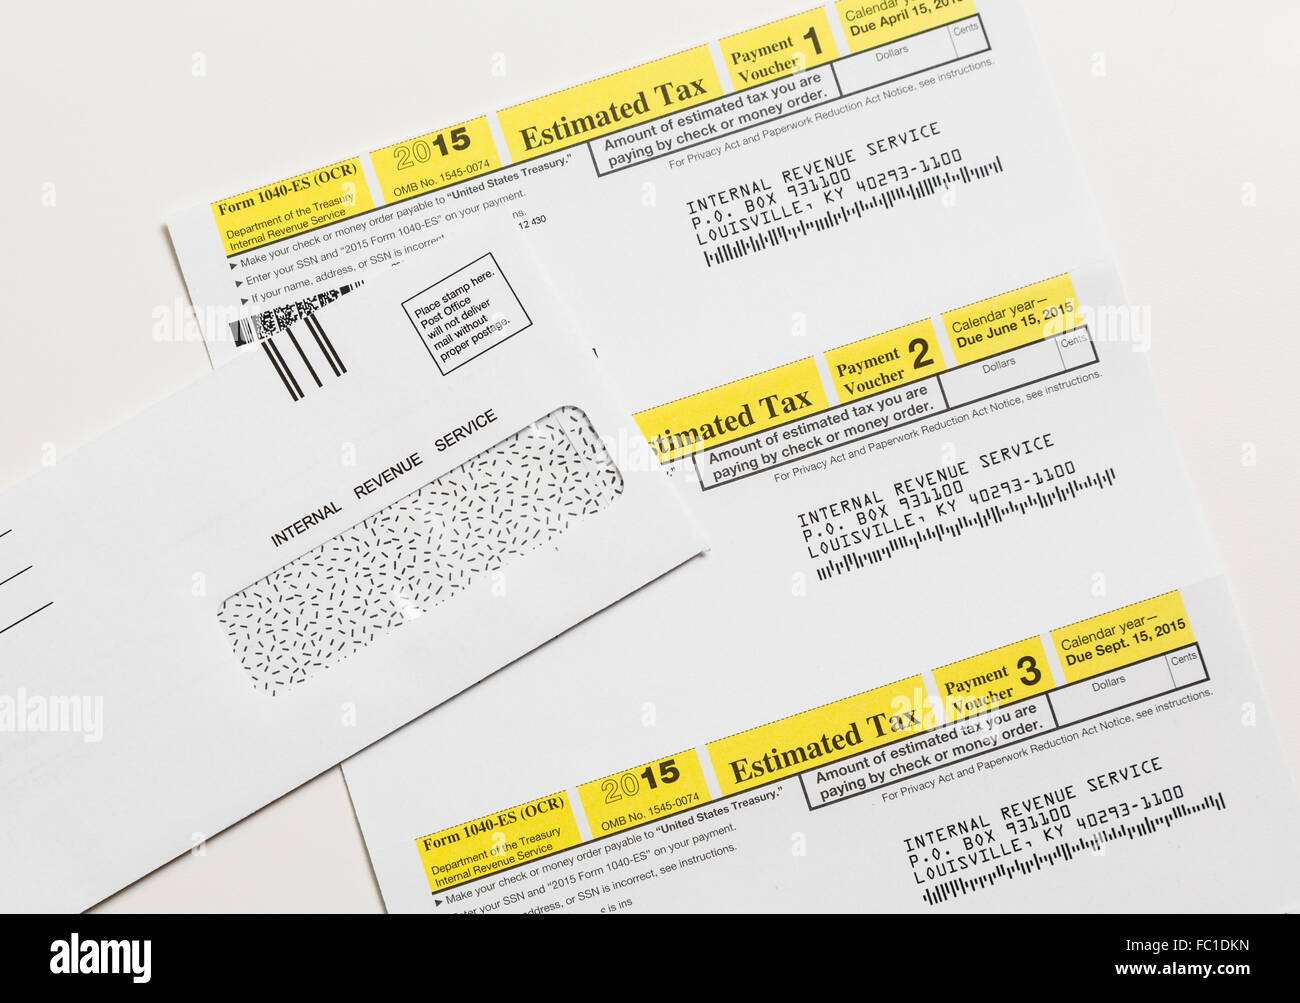 Us Irs Tax Form 1040 Es Stock Photo 93460409 Alamy